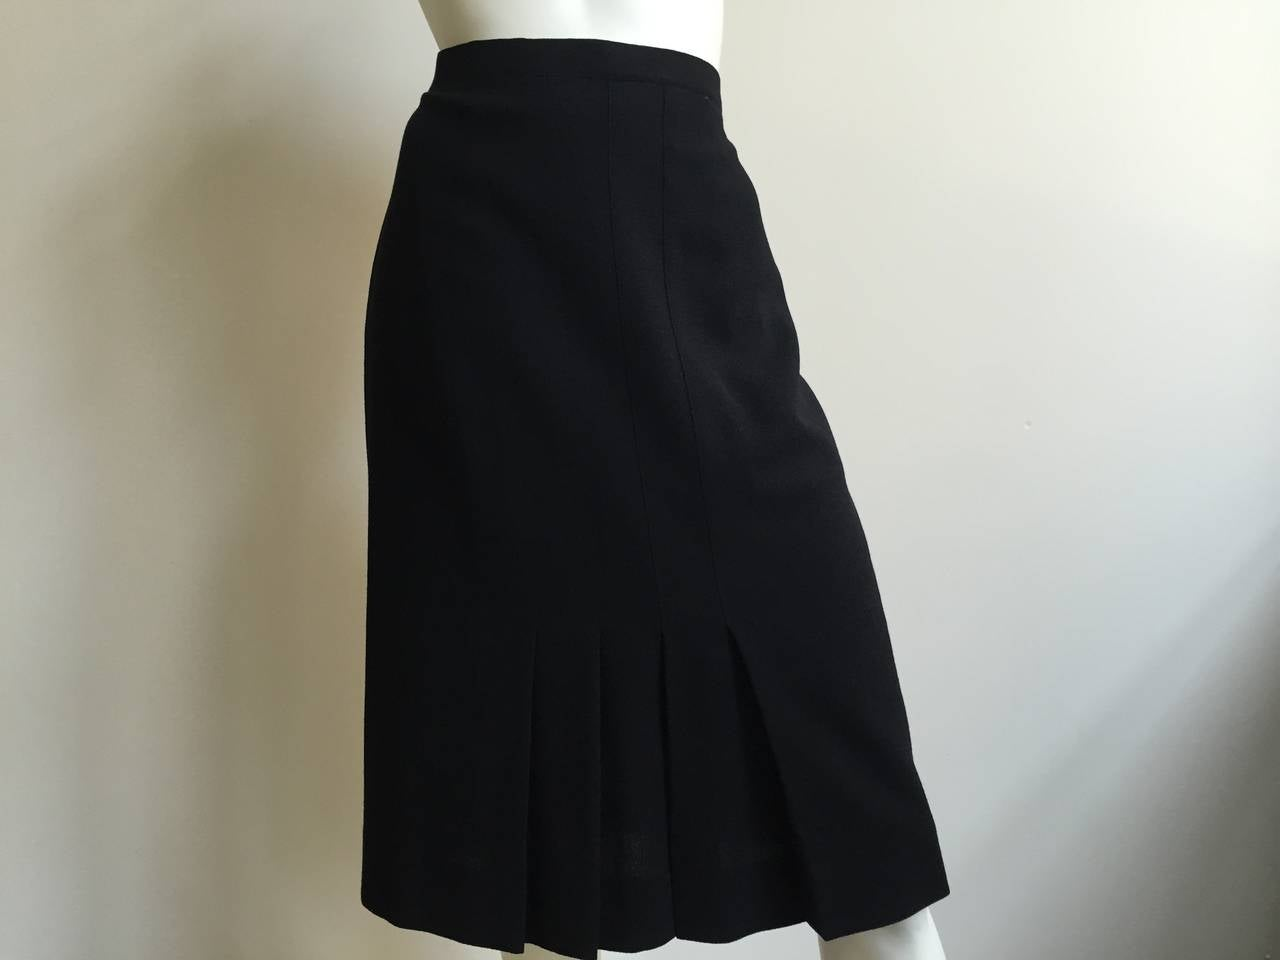 Chanel 80s Black Pleated Skirt Size 10. 7